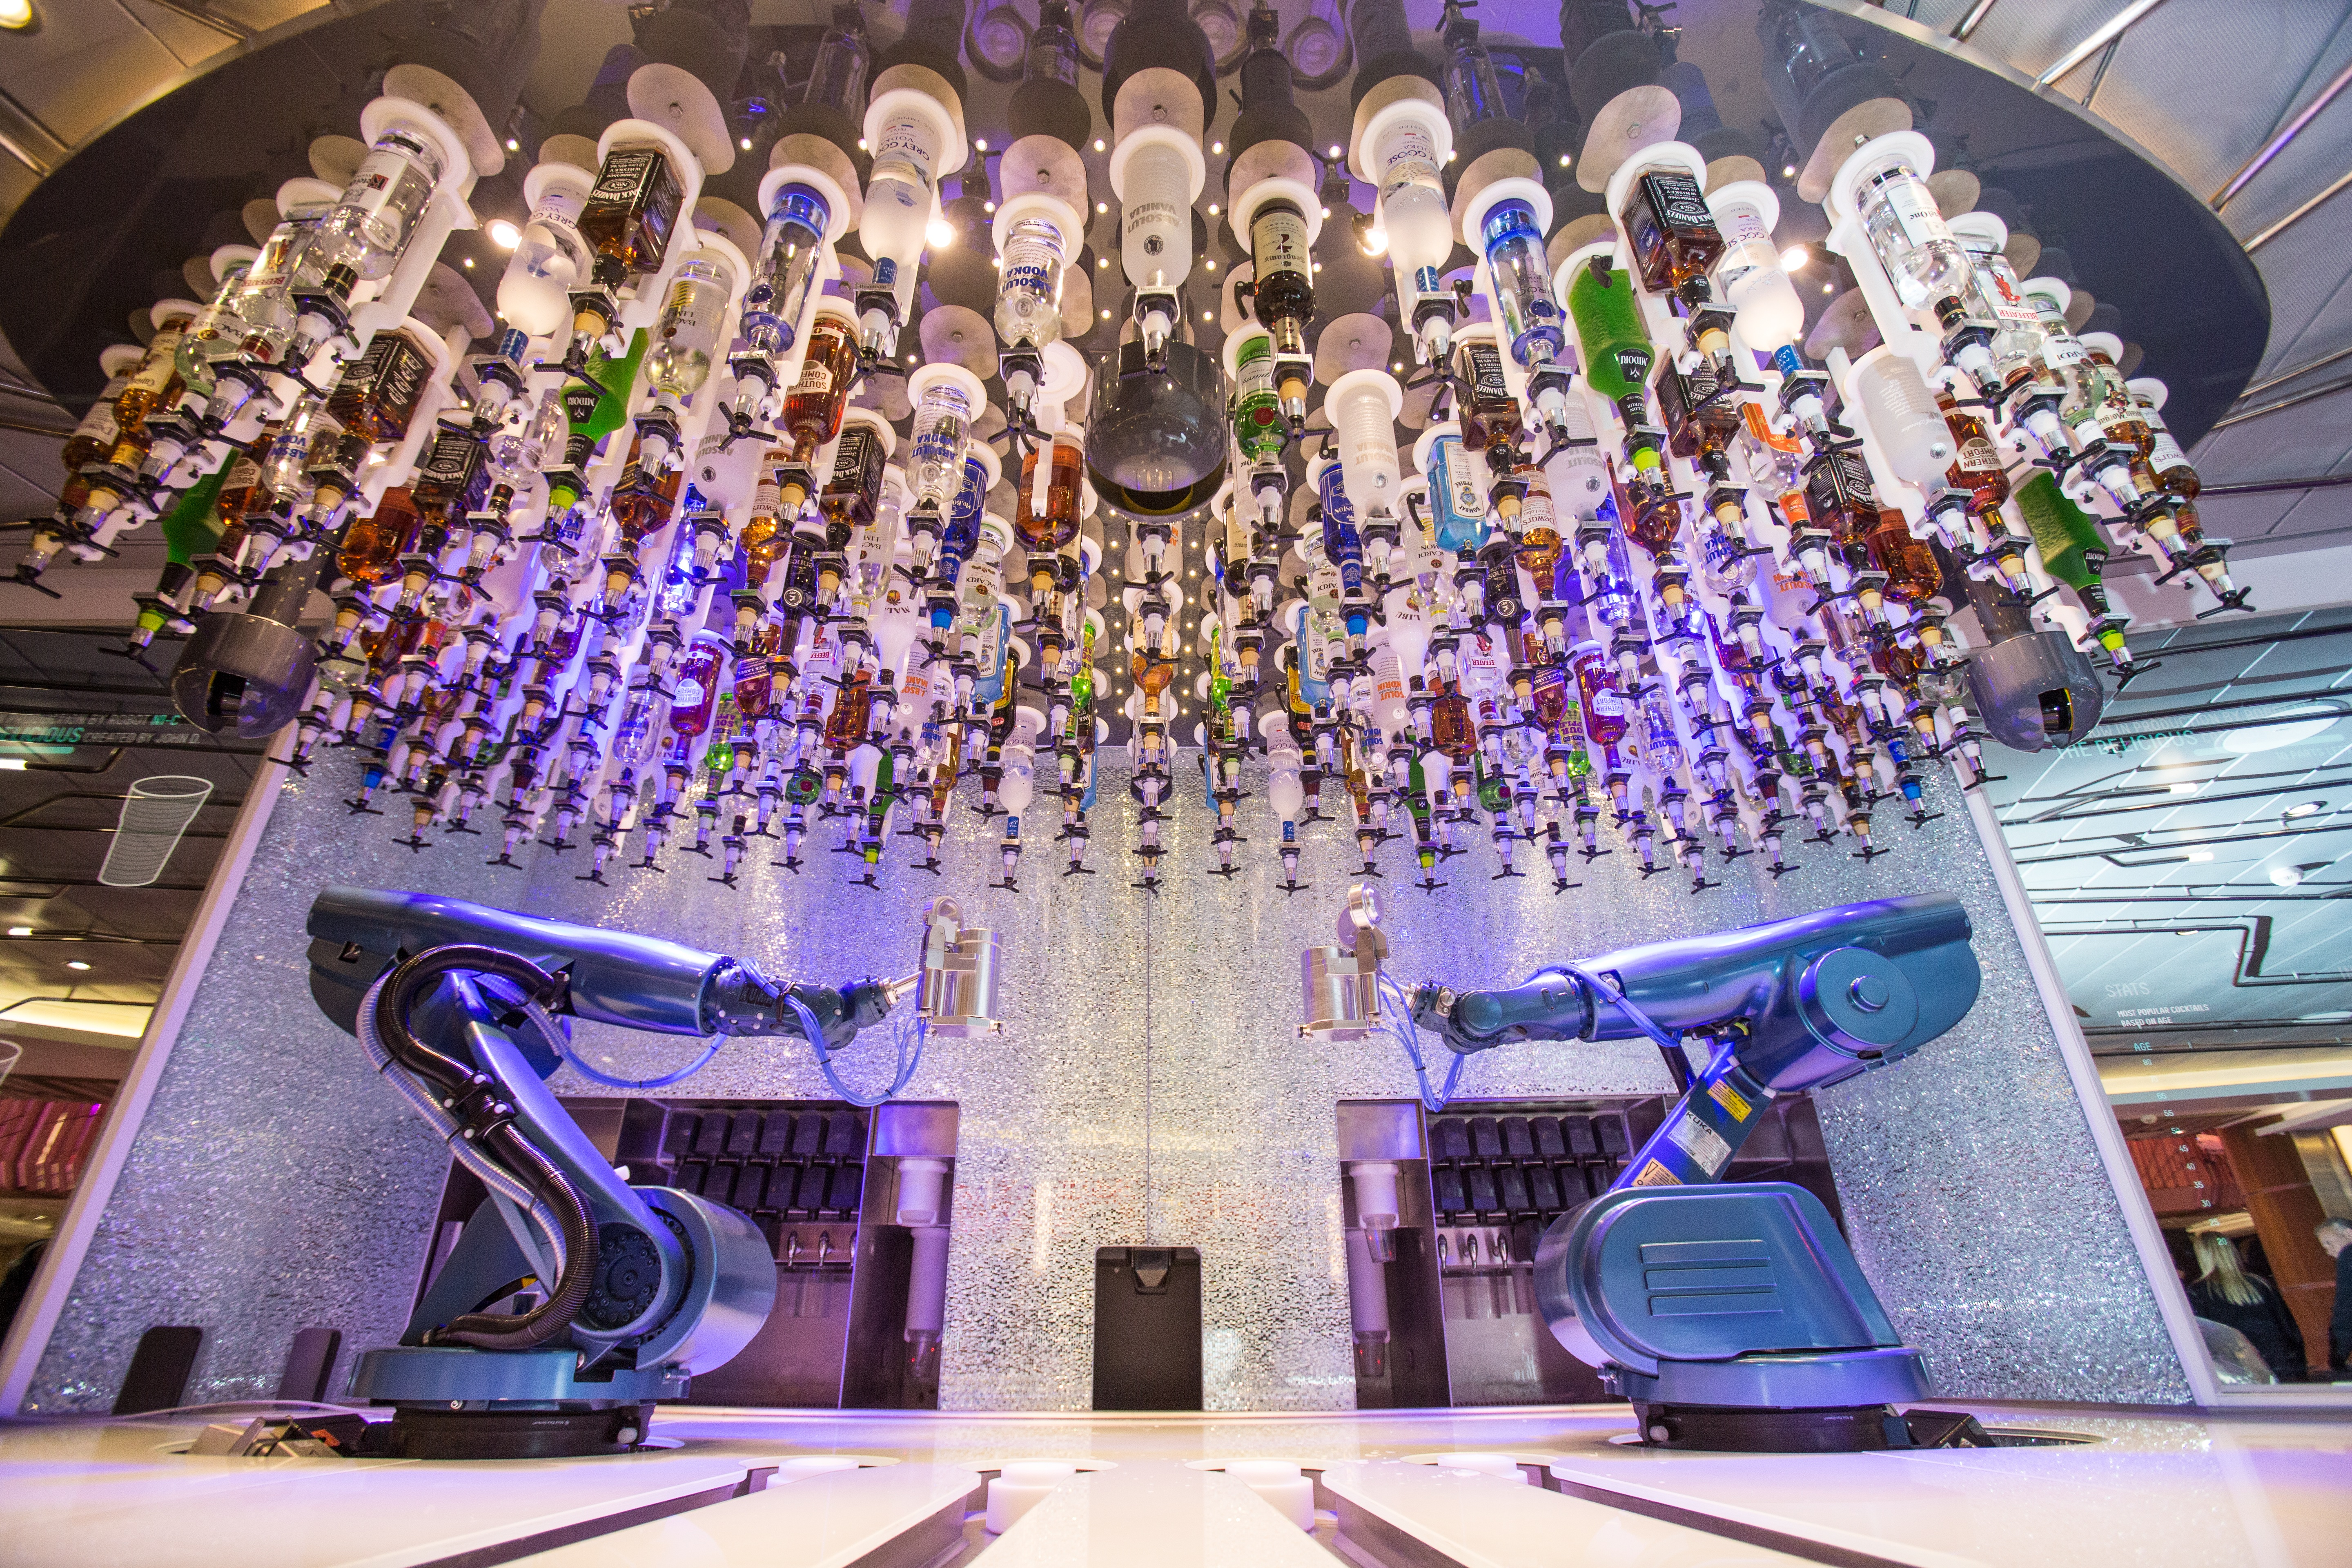 Royal Caribbean International launches Quantum of the Seas, the newest ship in the fleet, in November 2014. Bionic Bar, powered by Makr Shakr.